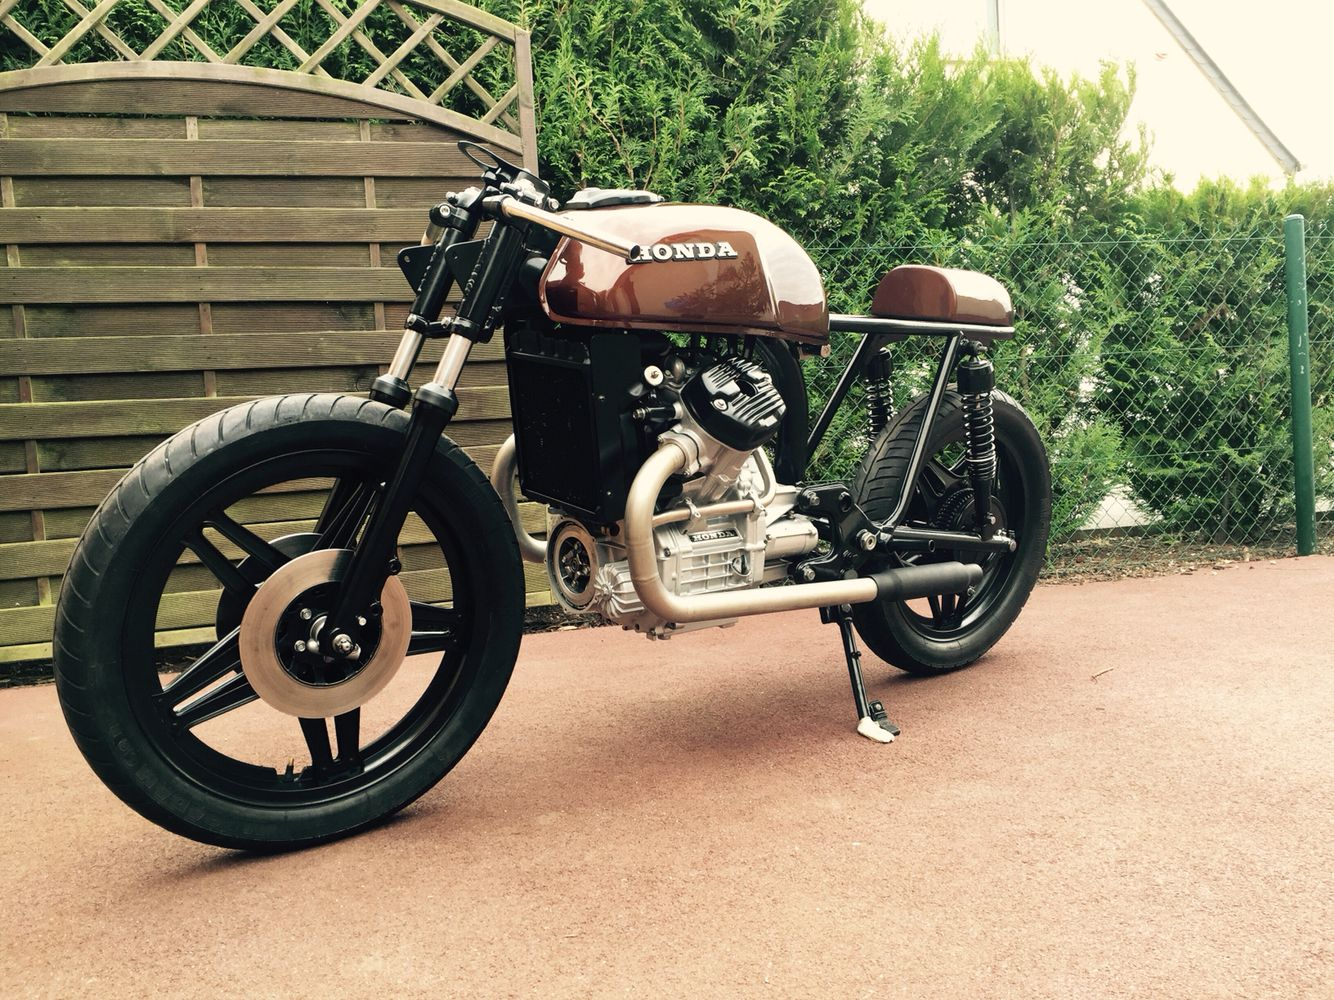 Work In Progress On My Honda Cafe Racer Caferacer Motocycle Cx400 Cx500